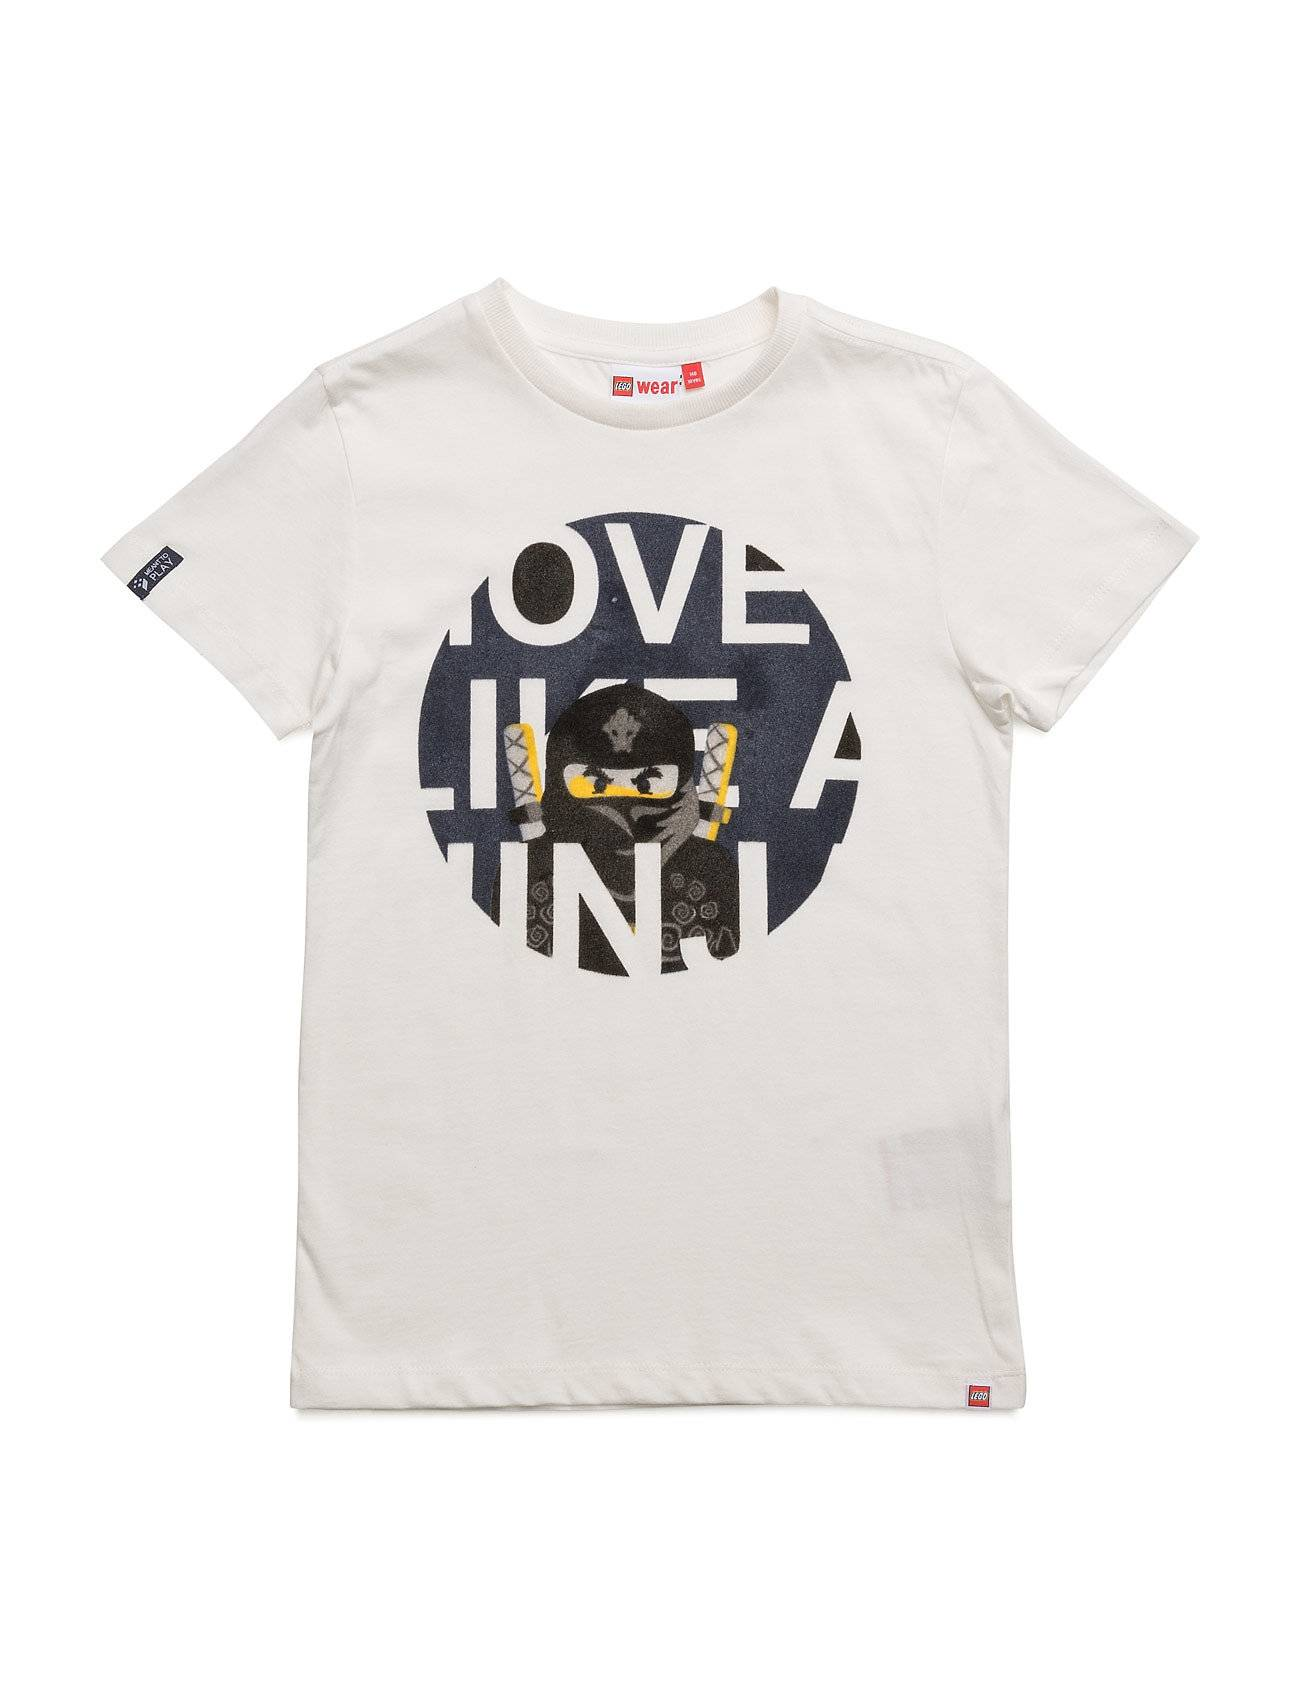 Lego Teo 601 - T-Shirt S/S